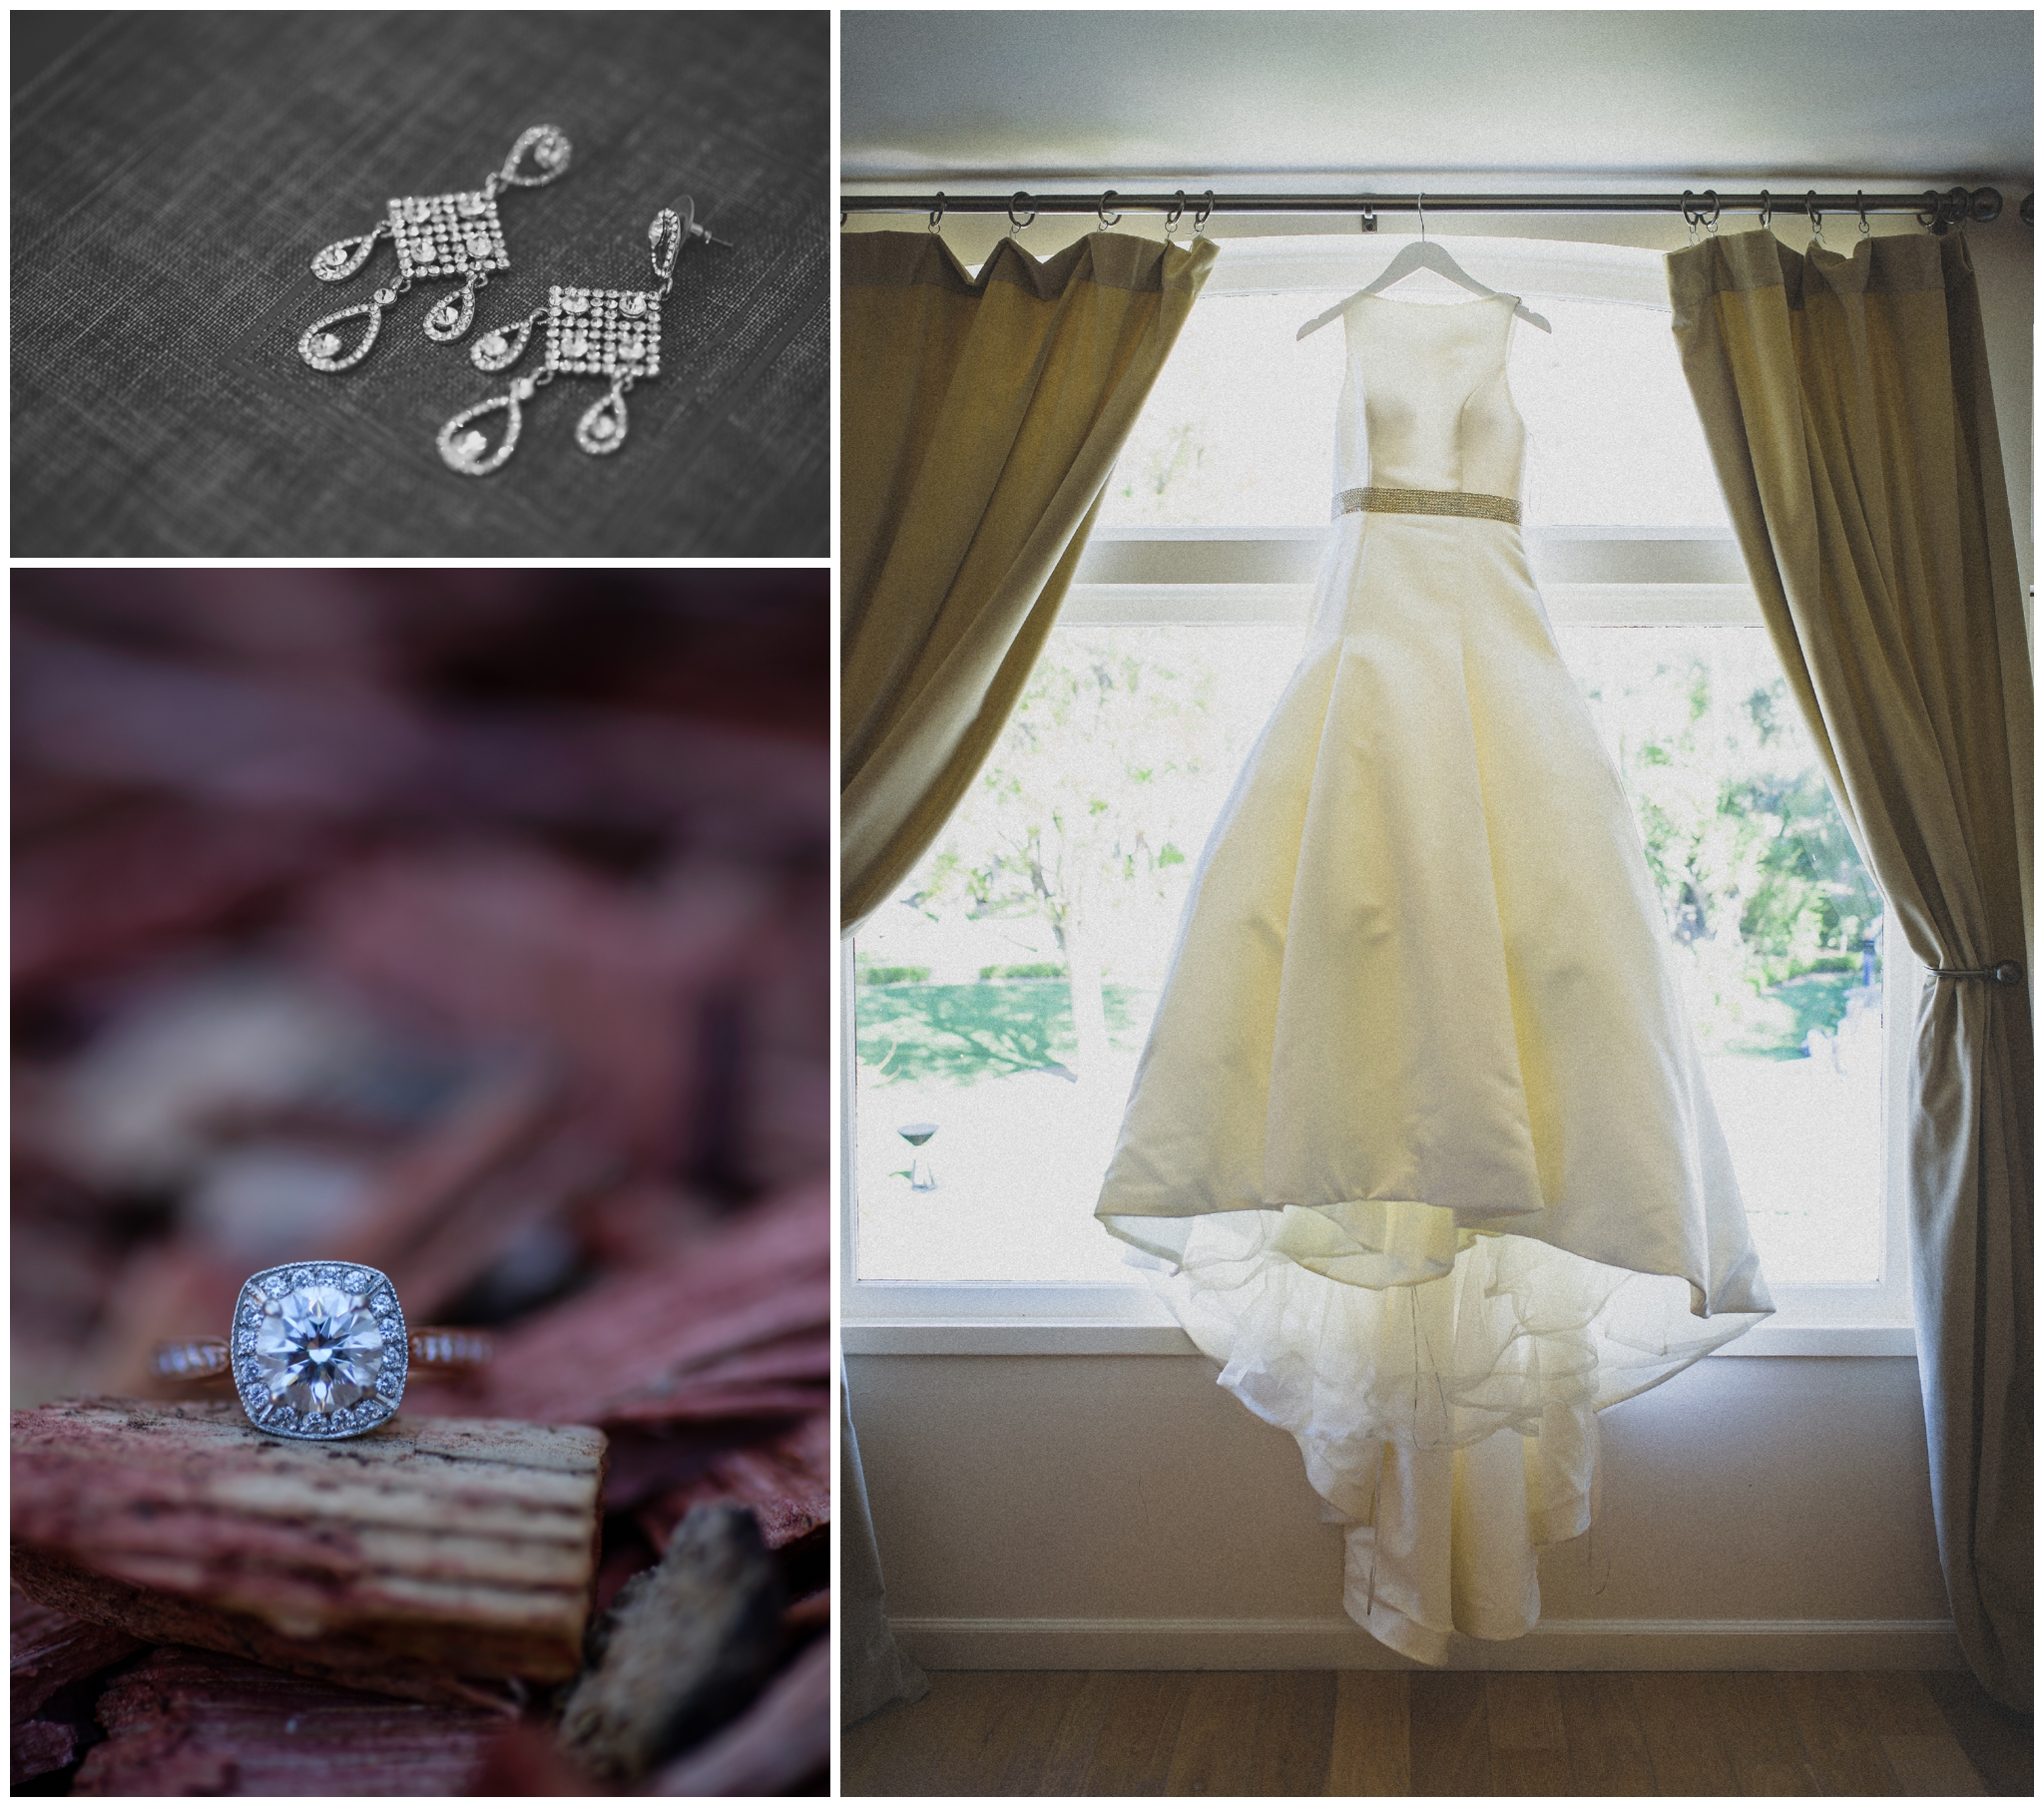 The beautiful dress looks great here at New Hall Mansion. The big windows let in so much natural light here that it almost makes it too easy to take amazing wedding photographs.